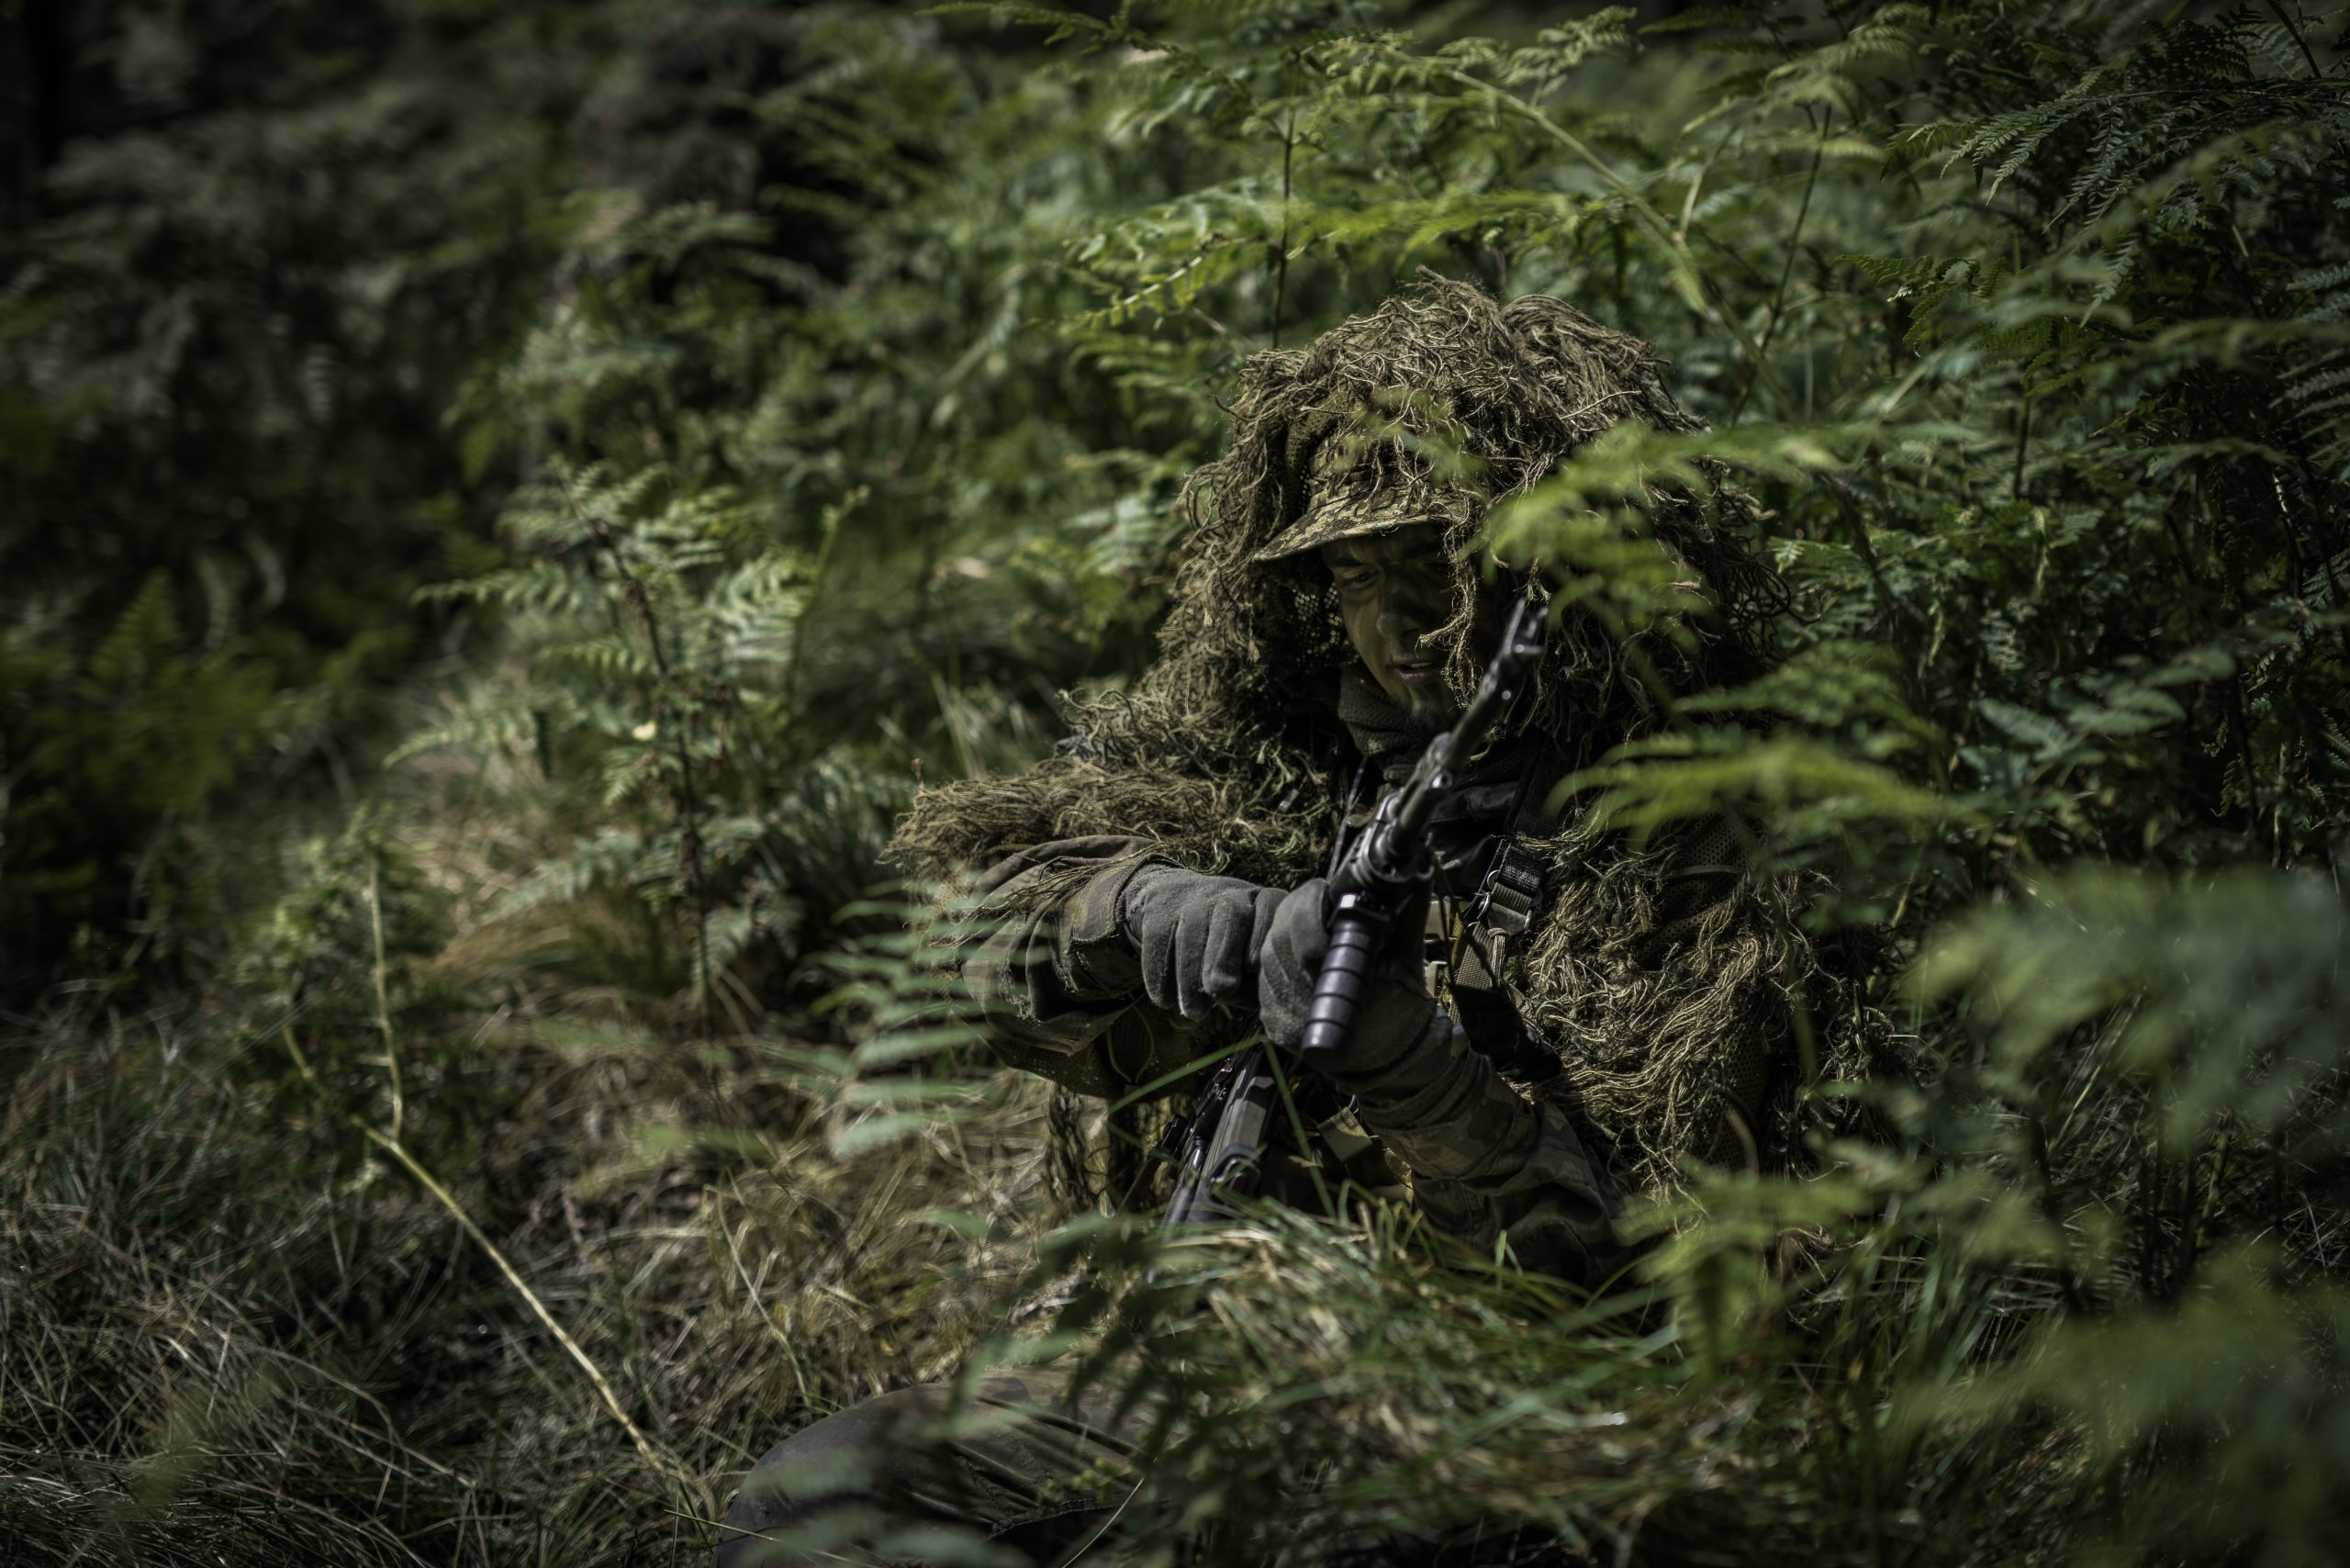 soldier-in-woods-image